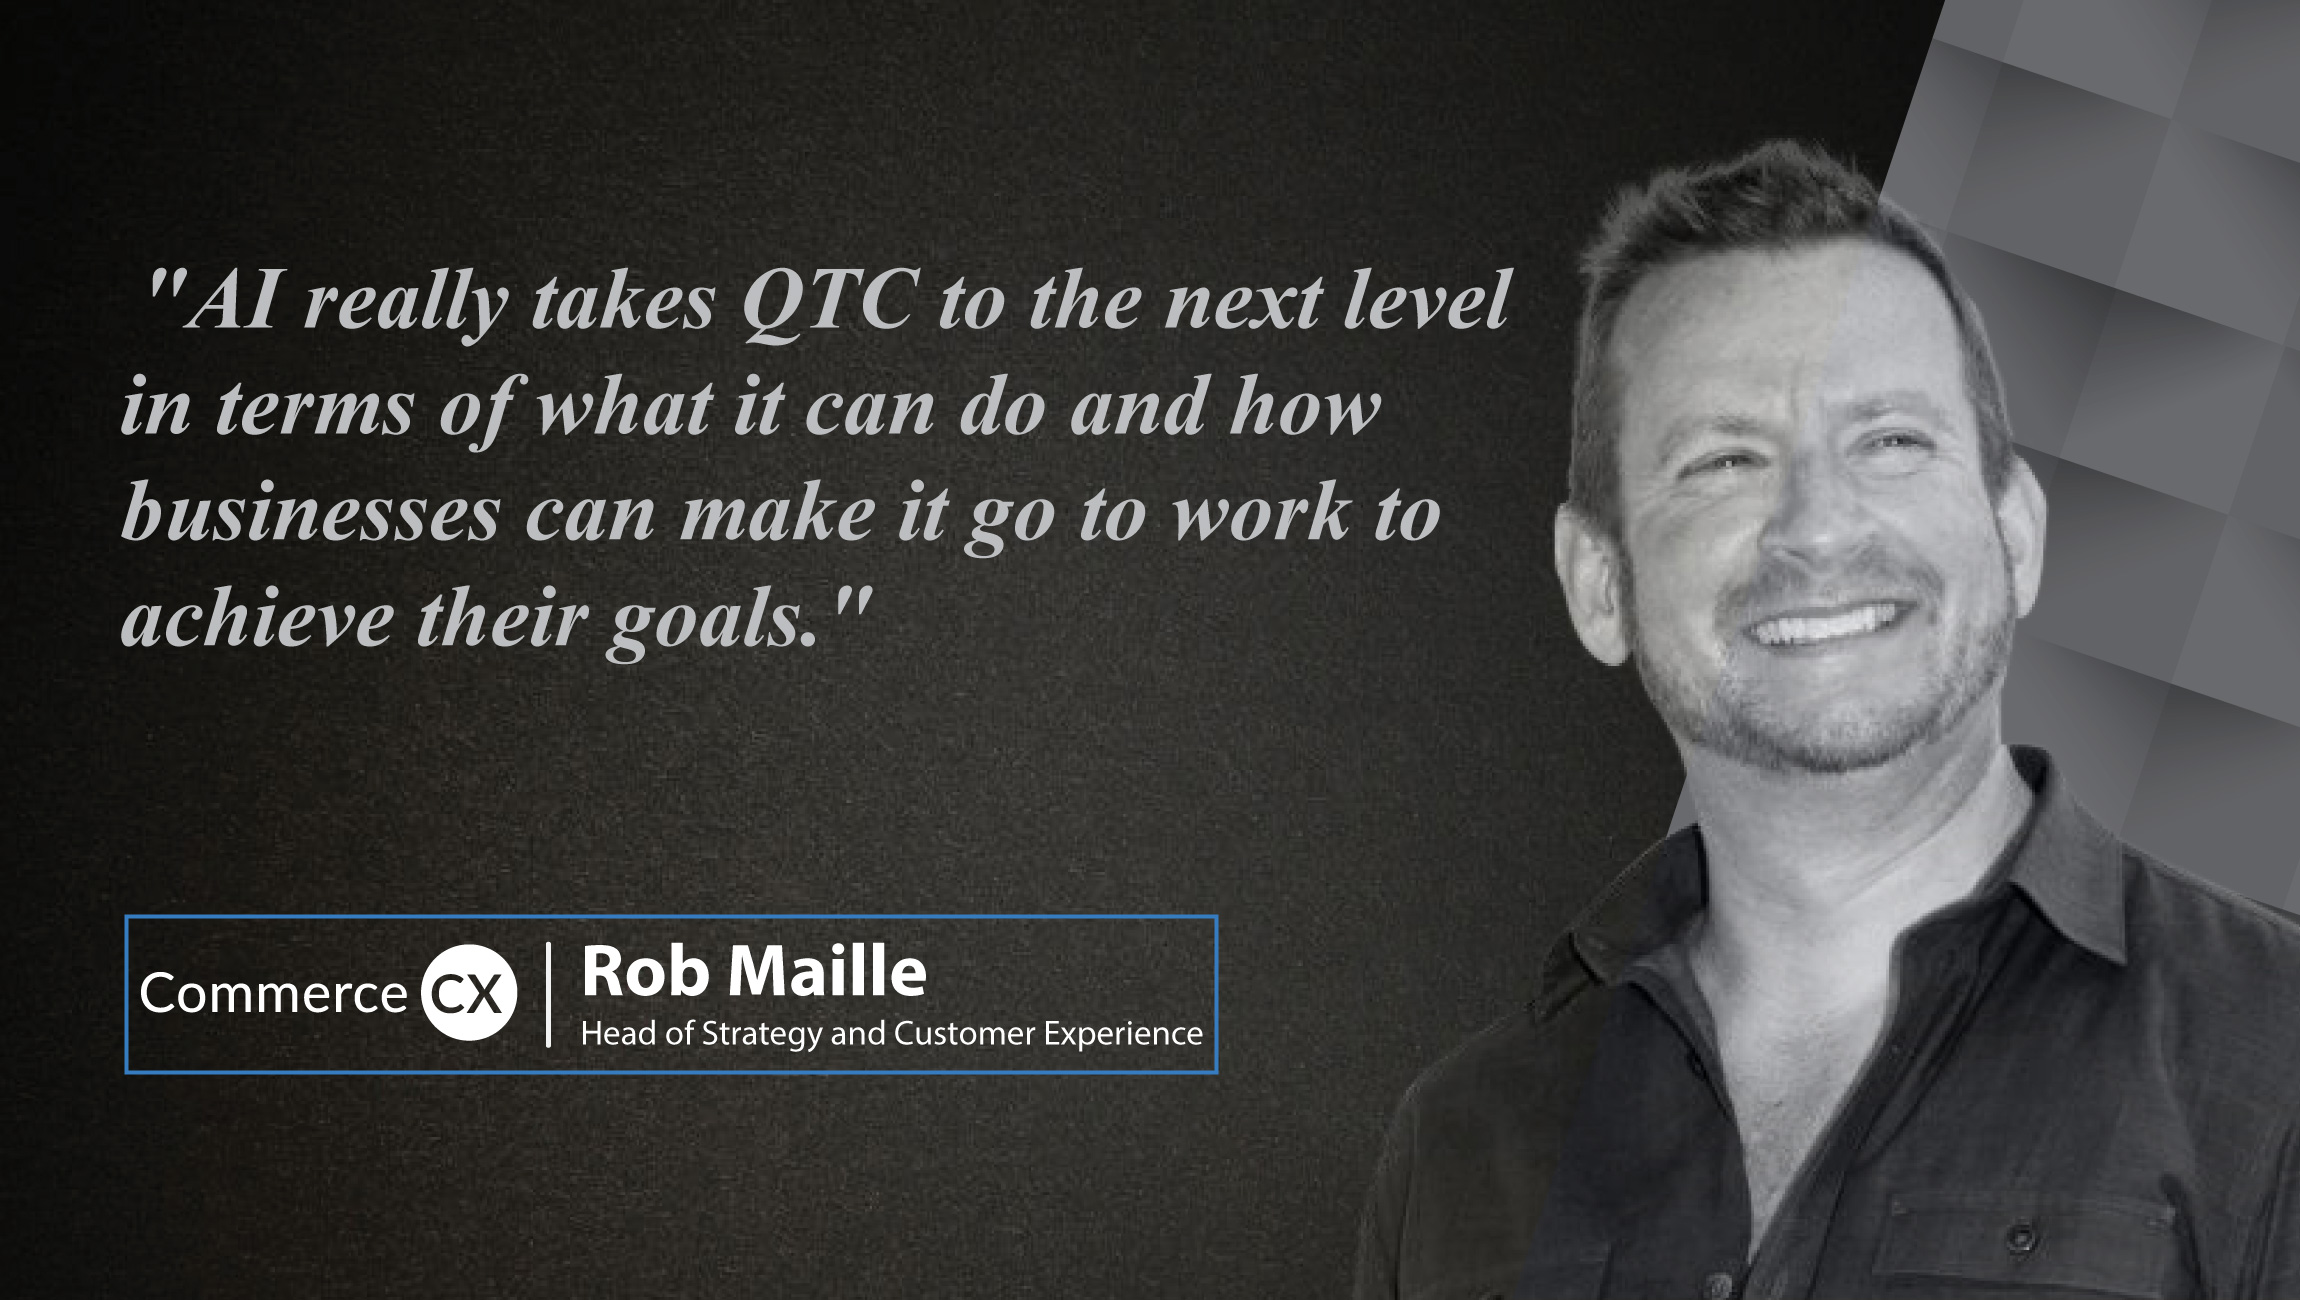 Interview with Rob Maille, Head of Strategy and Customer Experience at CommerceCX_Cue Card